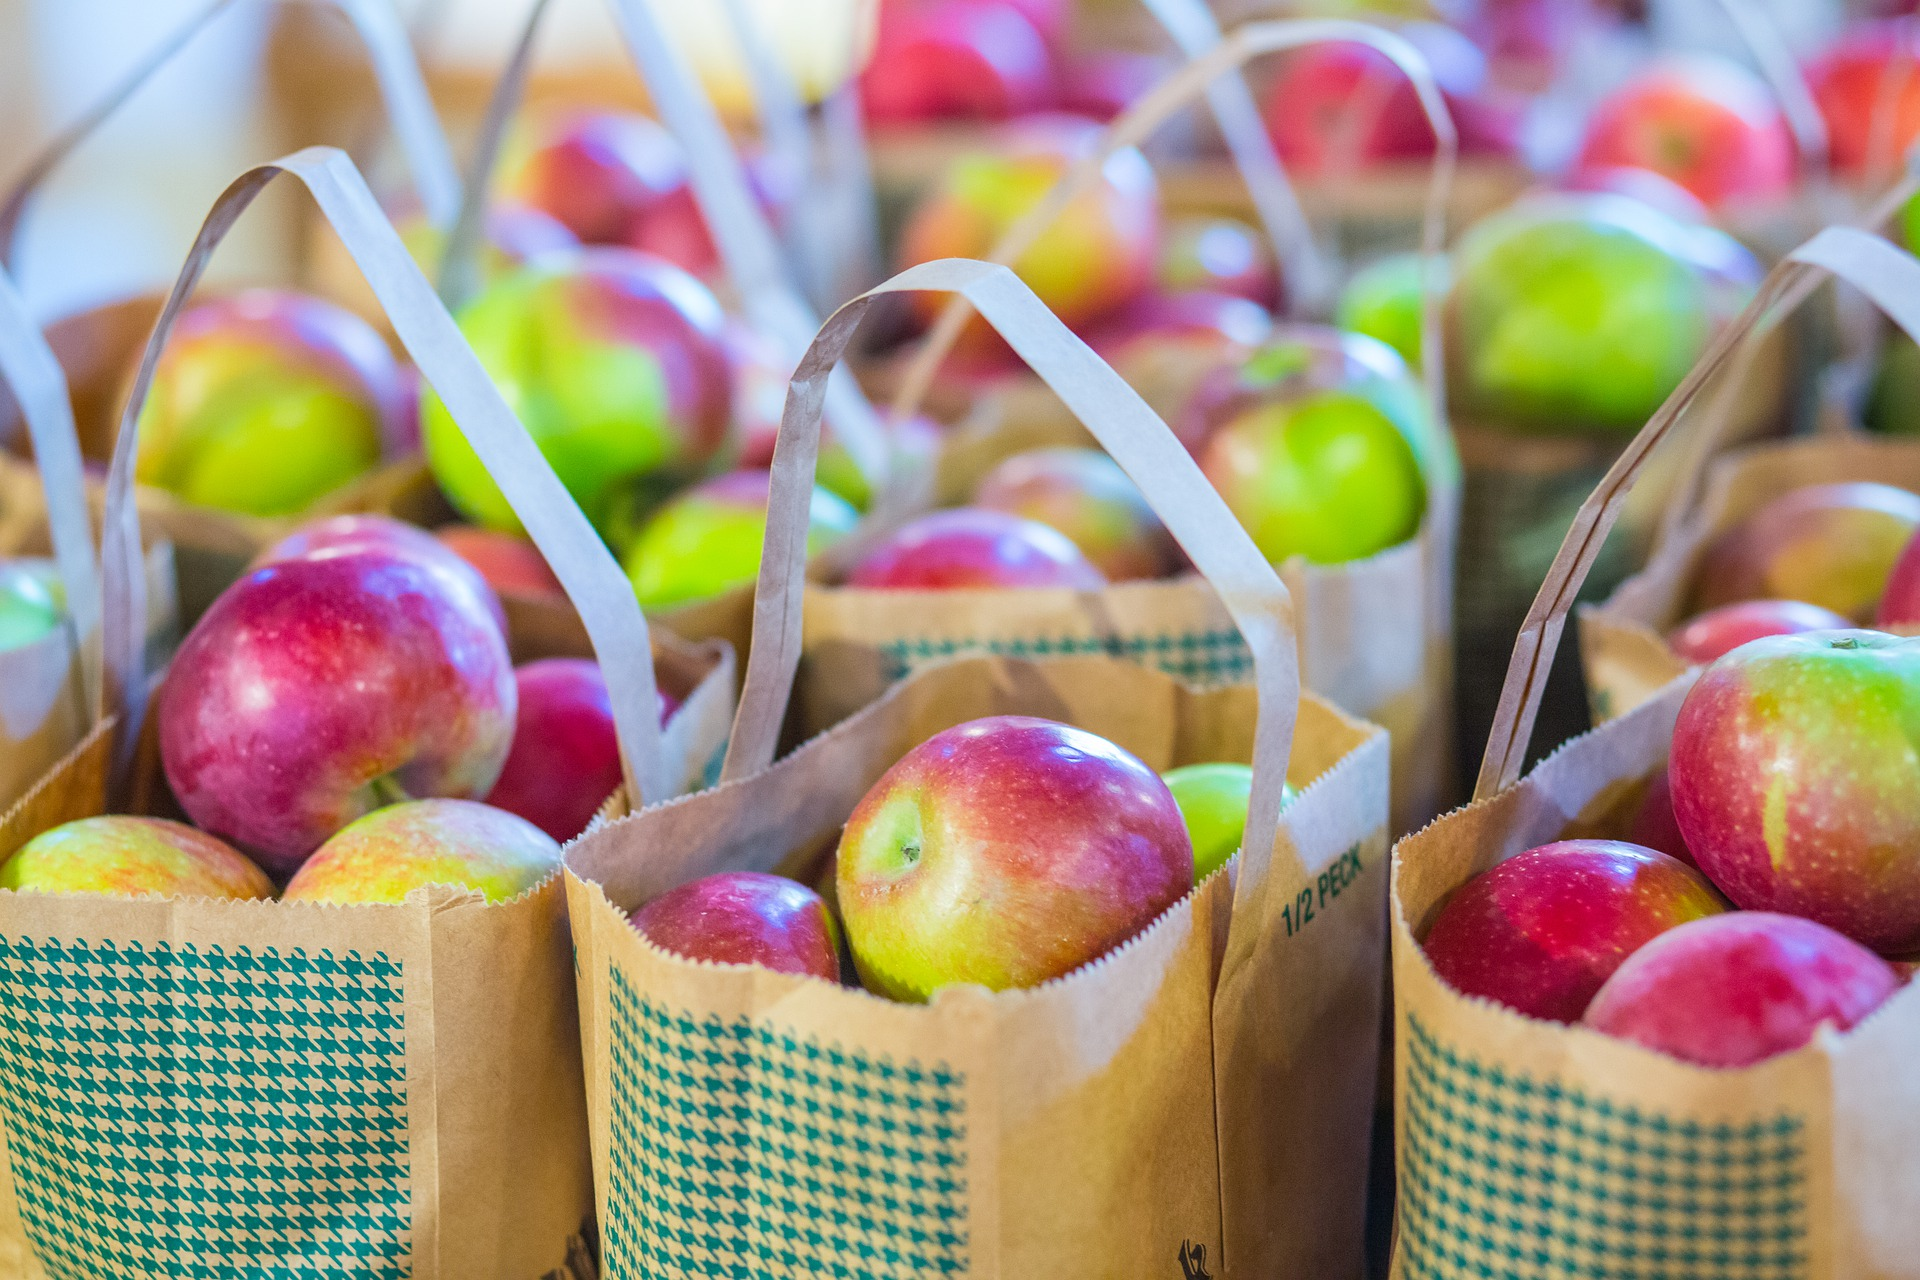 Multiple rows of bags of red and green apples.